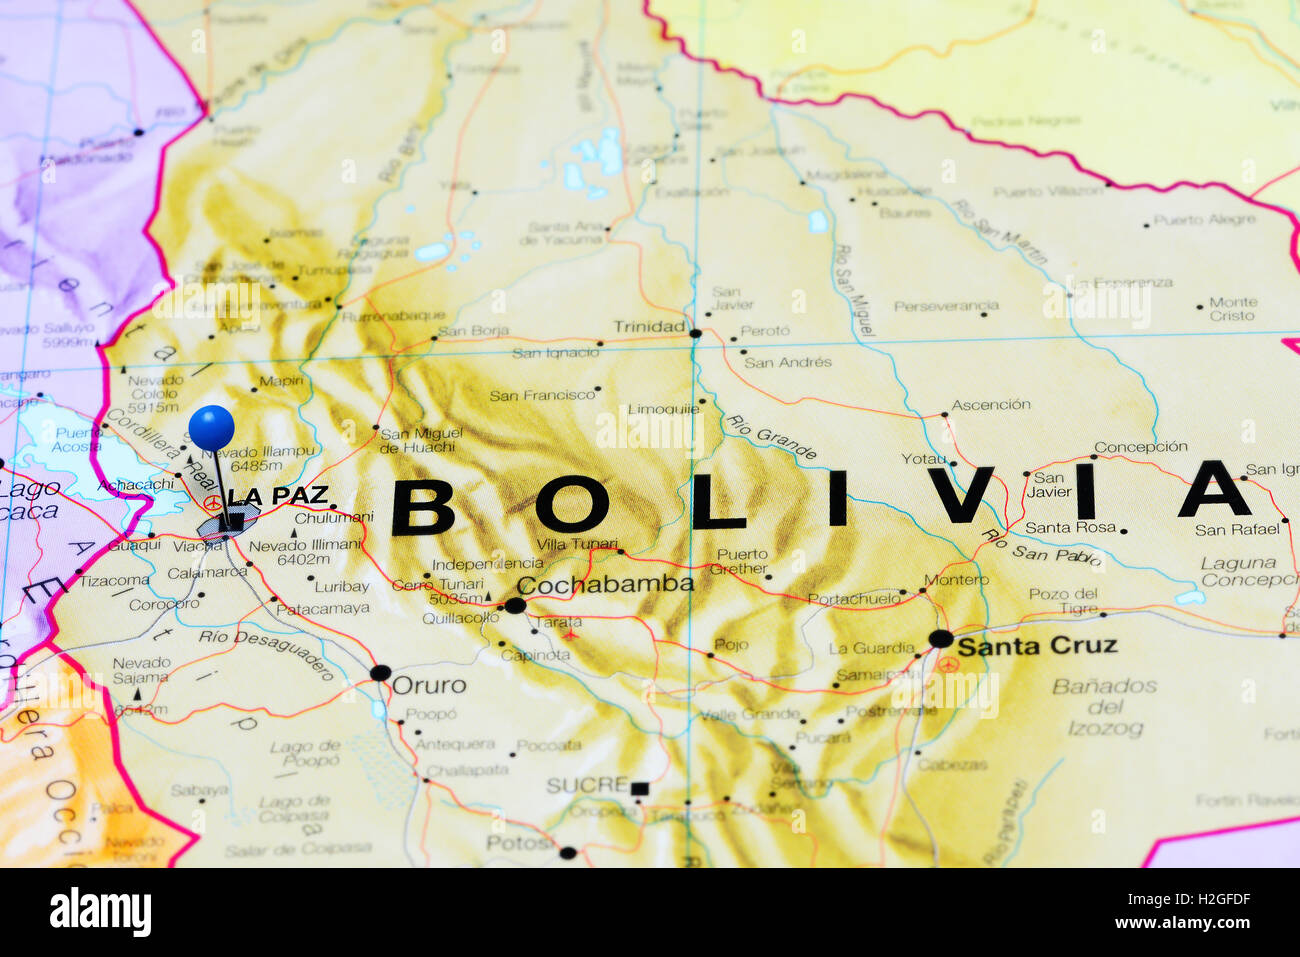 La Paz Pinned On A Map Of Bolivia Stock Photo Royalty Free Image - Map of bolivia